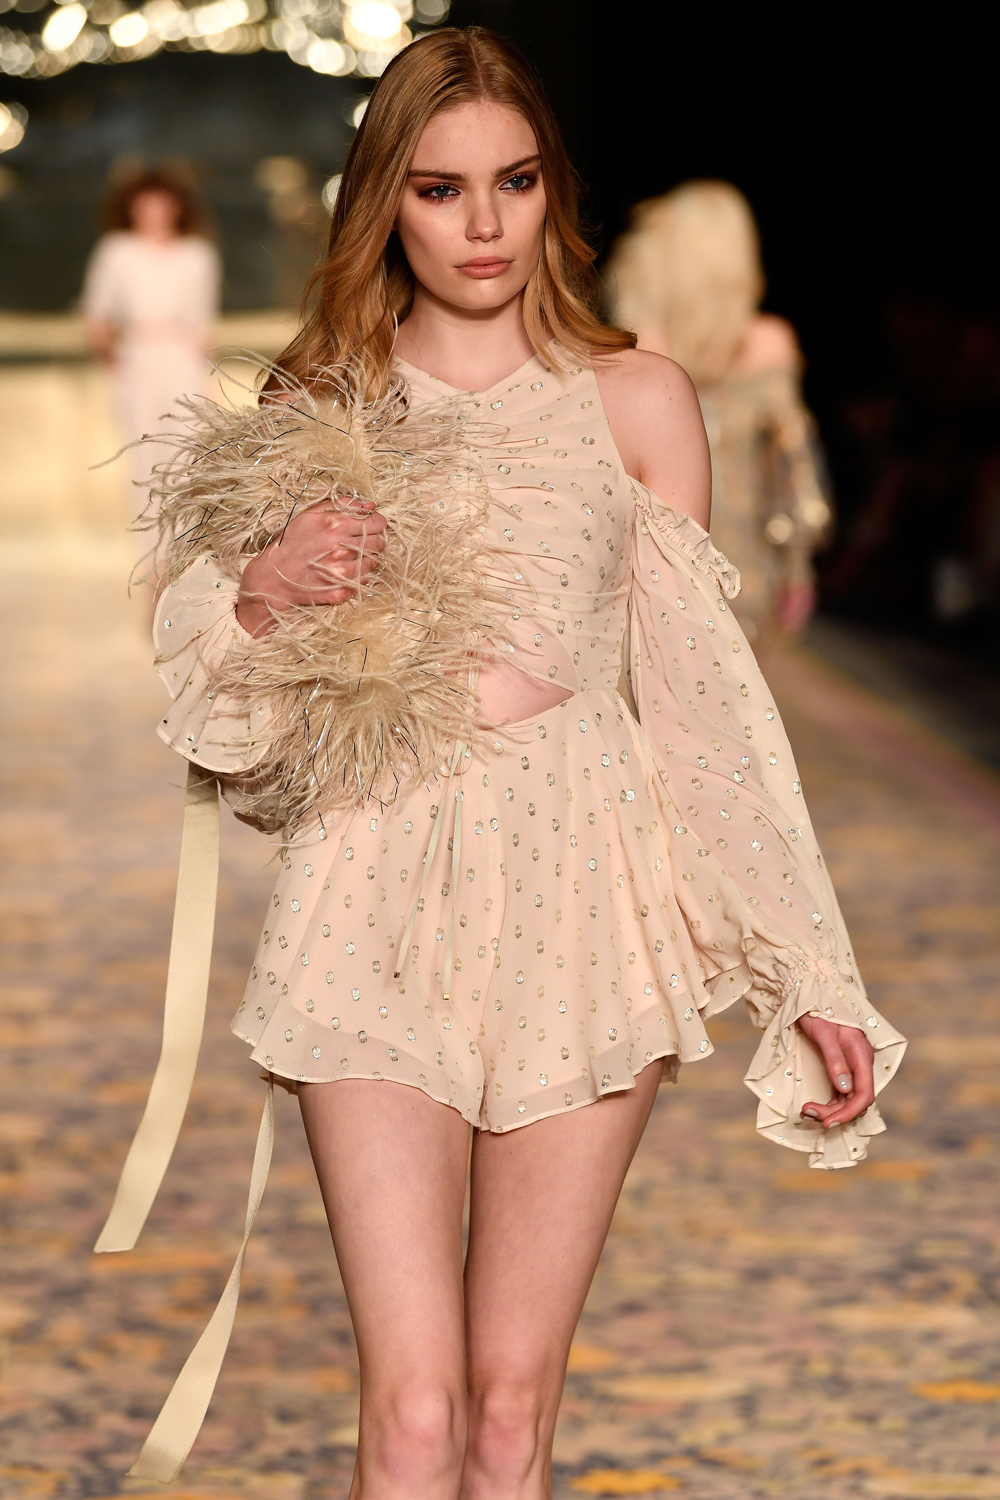 SYDNEY, AUSTRALIA - MAY 15:  A model walks the runway during the Alice McCall show at Mercedes-Benz Fashion Week Resort 18 Collections at Carriageworks on May 15, 2017 in Sydney, Australia.  (Photo by Stefan Gosatti/Getty Images)